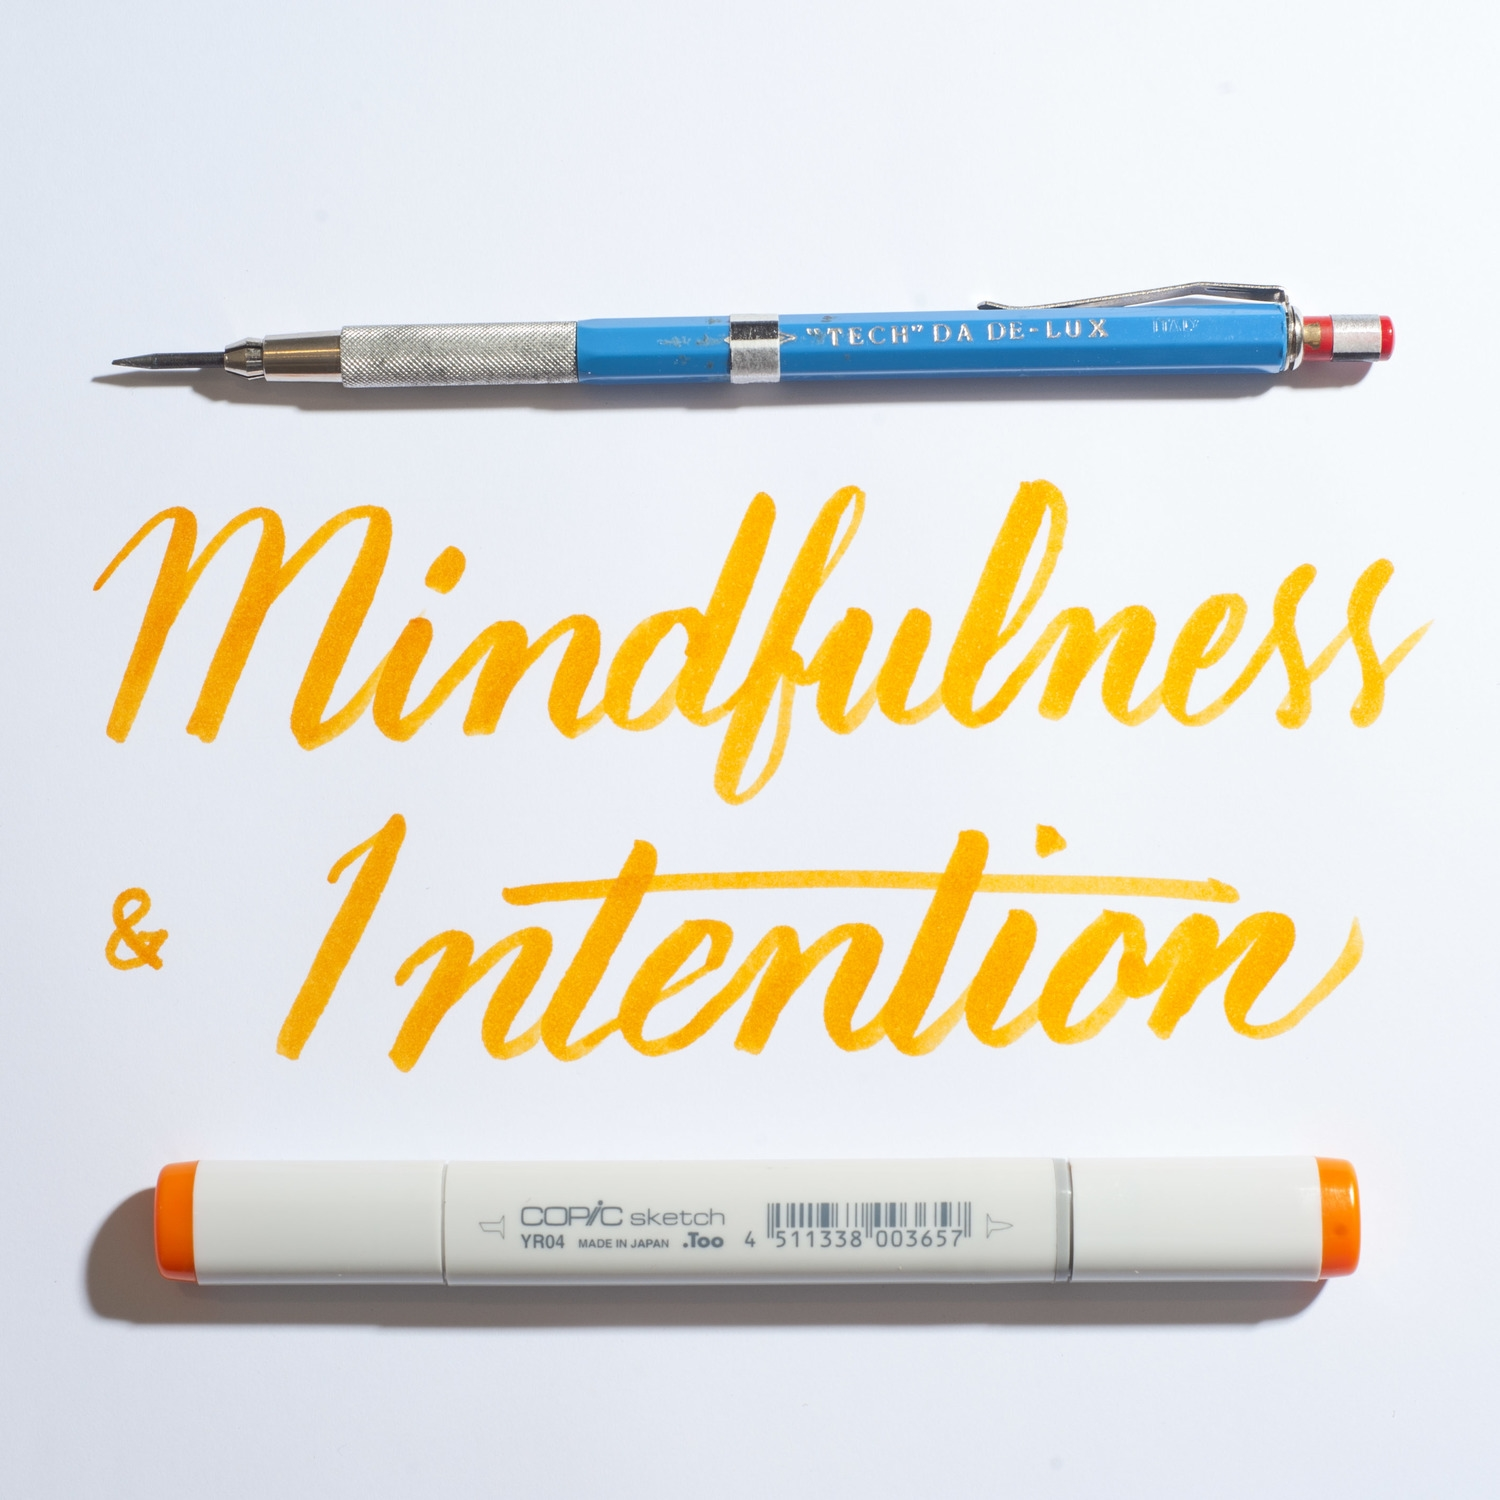 mindfulness, intention, lettering, brush calligraphy